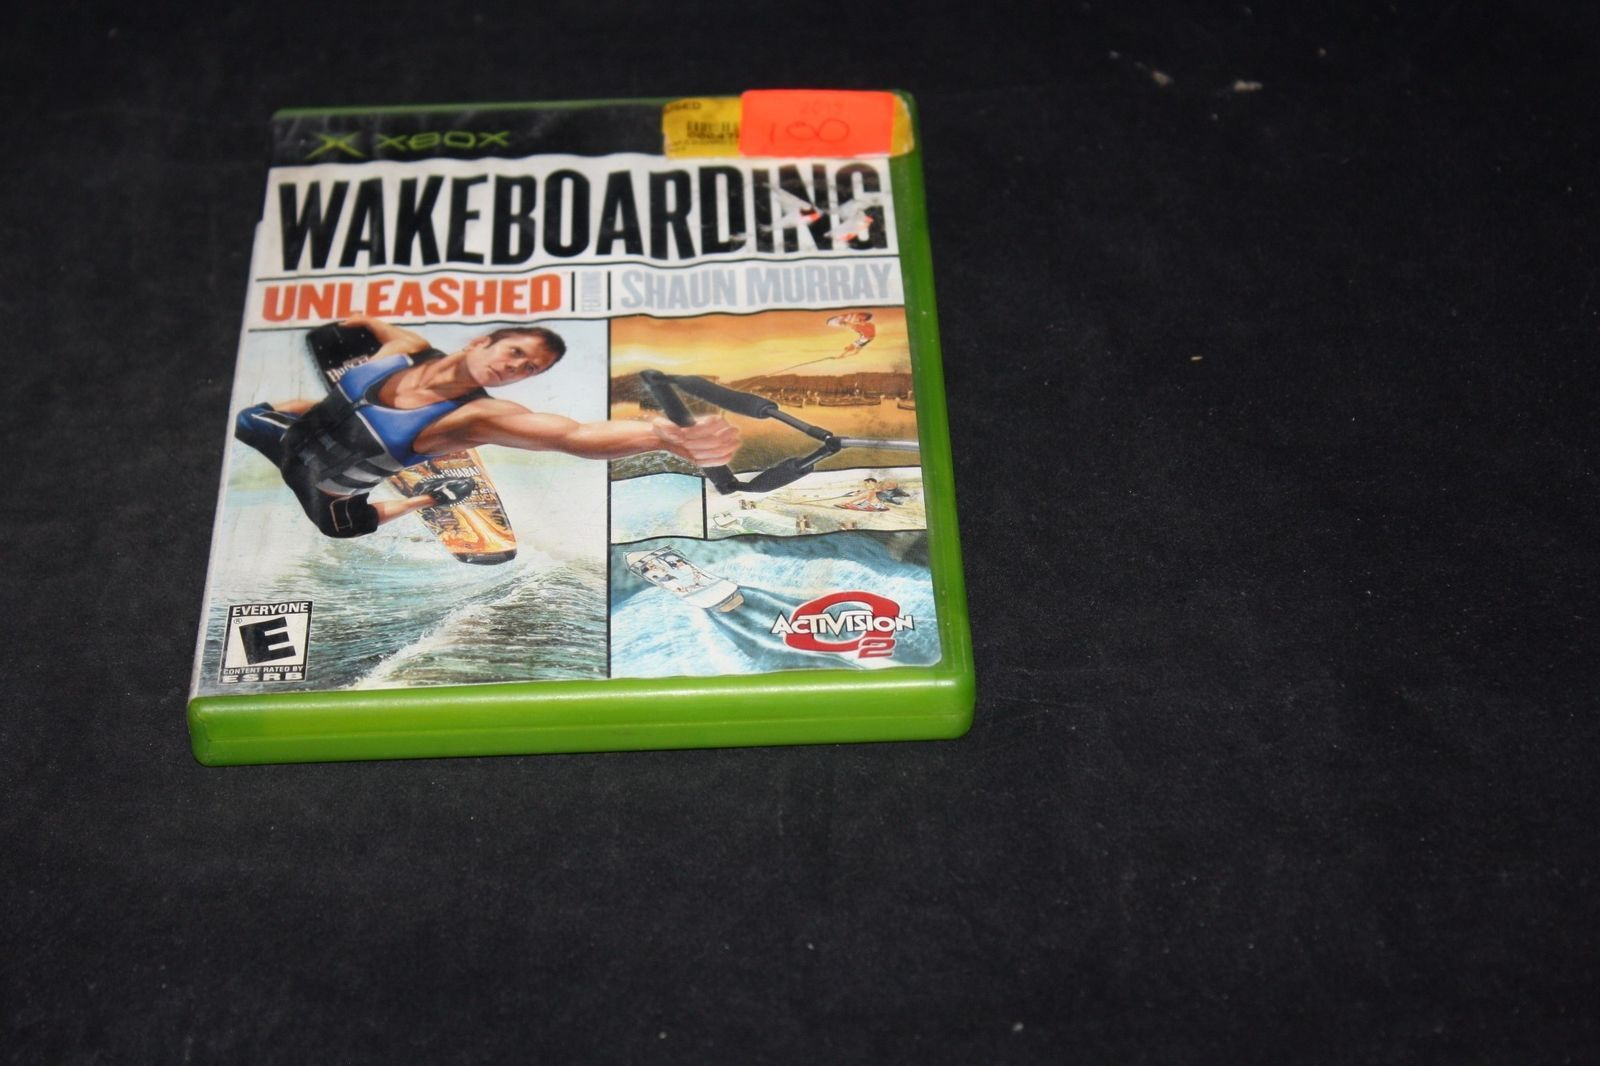 Primary image for Wakeboarding Unleashed Featuring Shaun Murray (Microsoft Xbox, 2003)